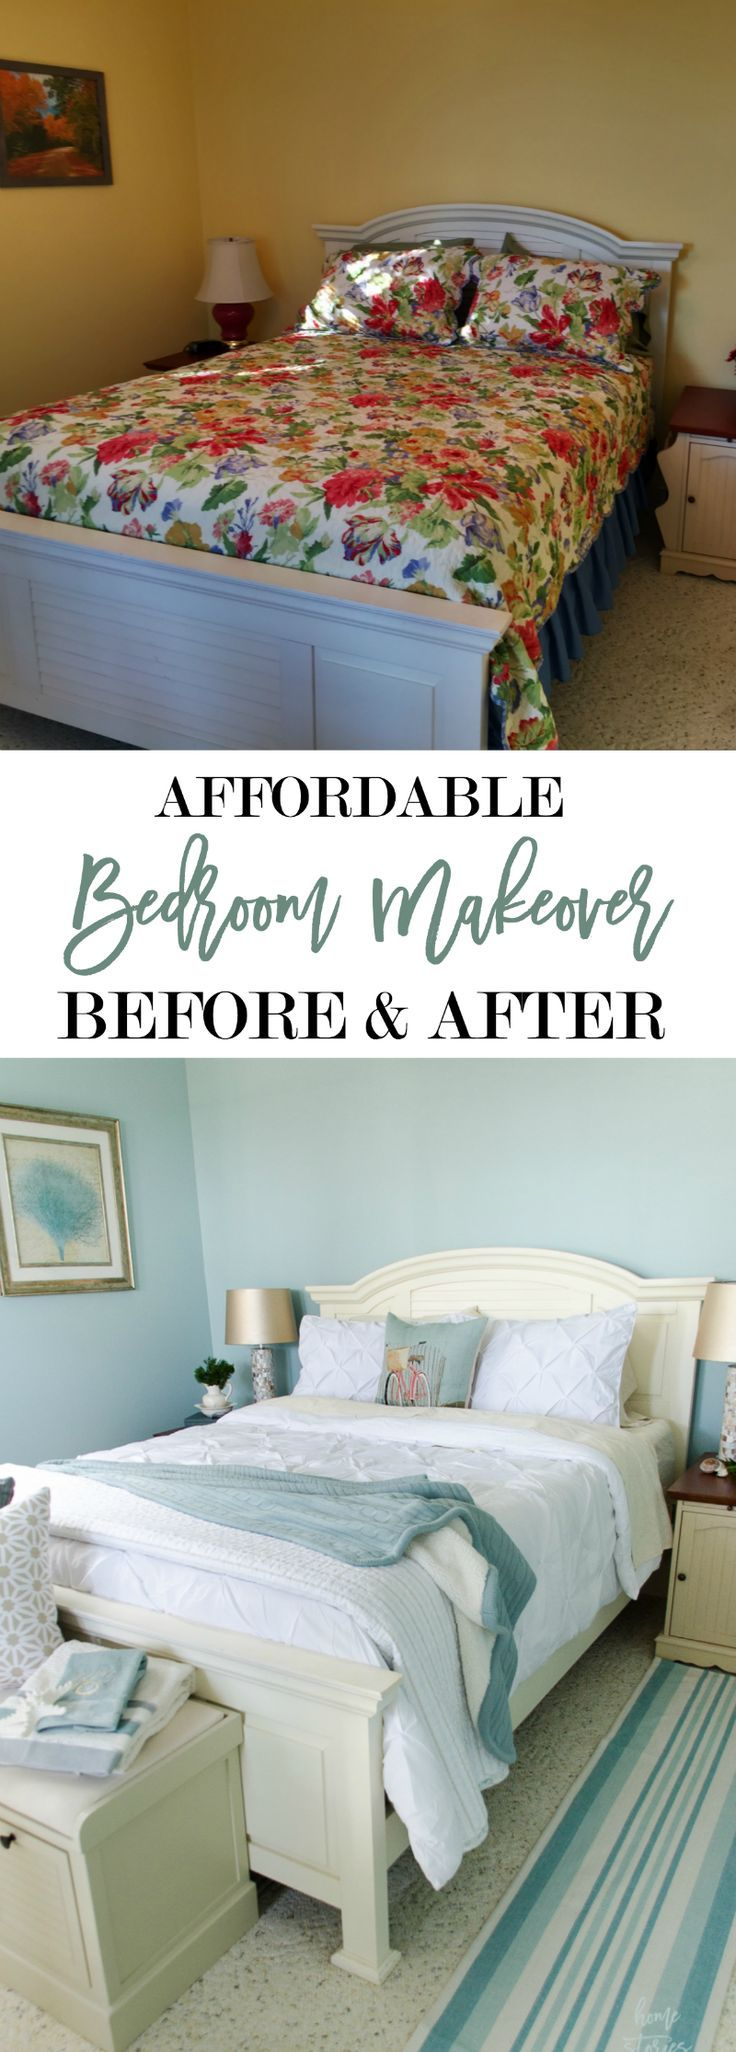 168 best bedroom images on pinterest bedroom ideas guest bedroom makeover before and after